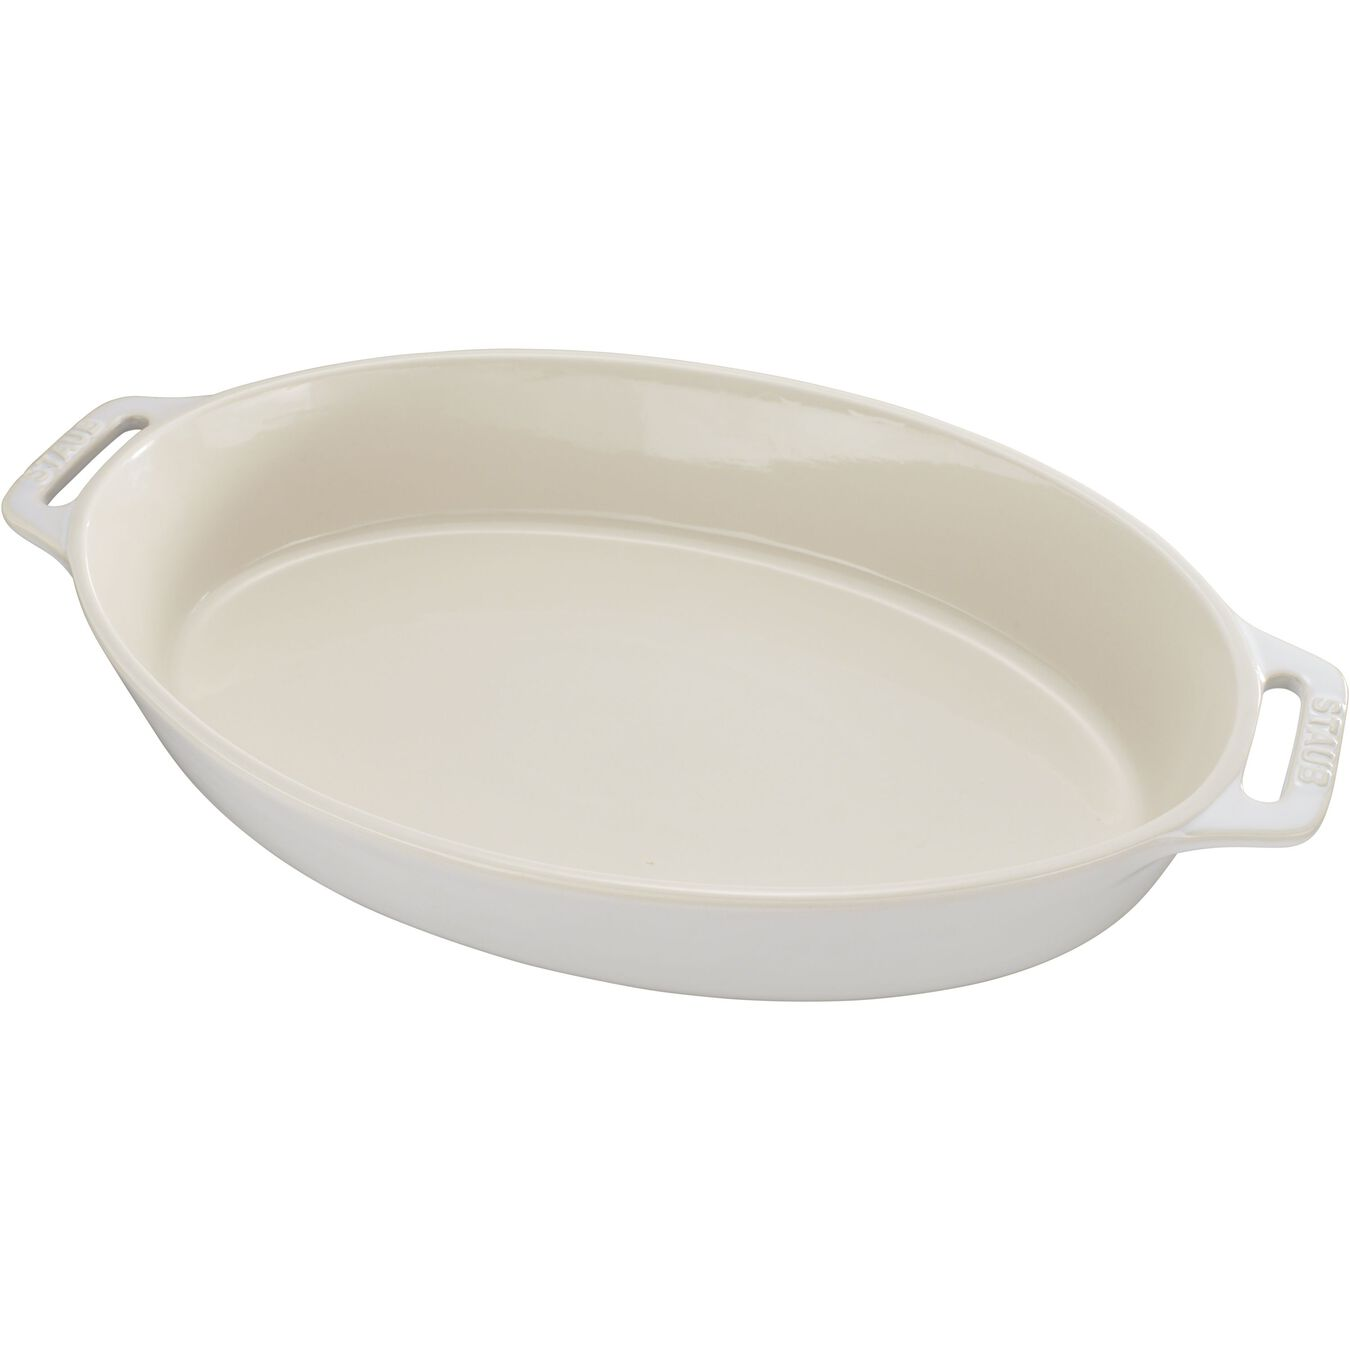 14.5-inch Oval Baking Dish - Rustic Ivory,,large 1